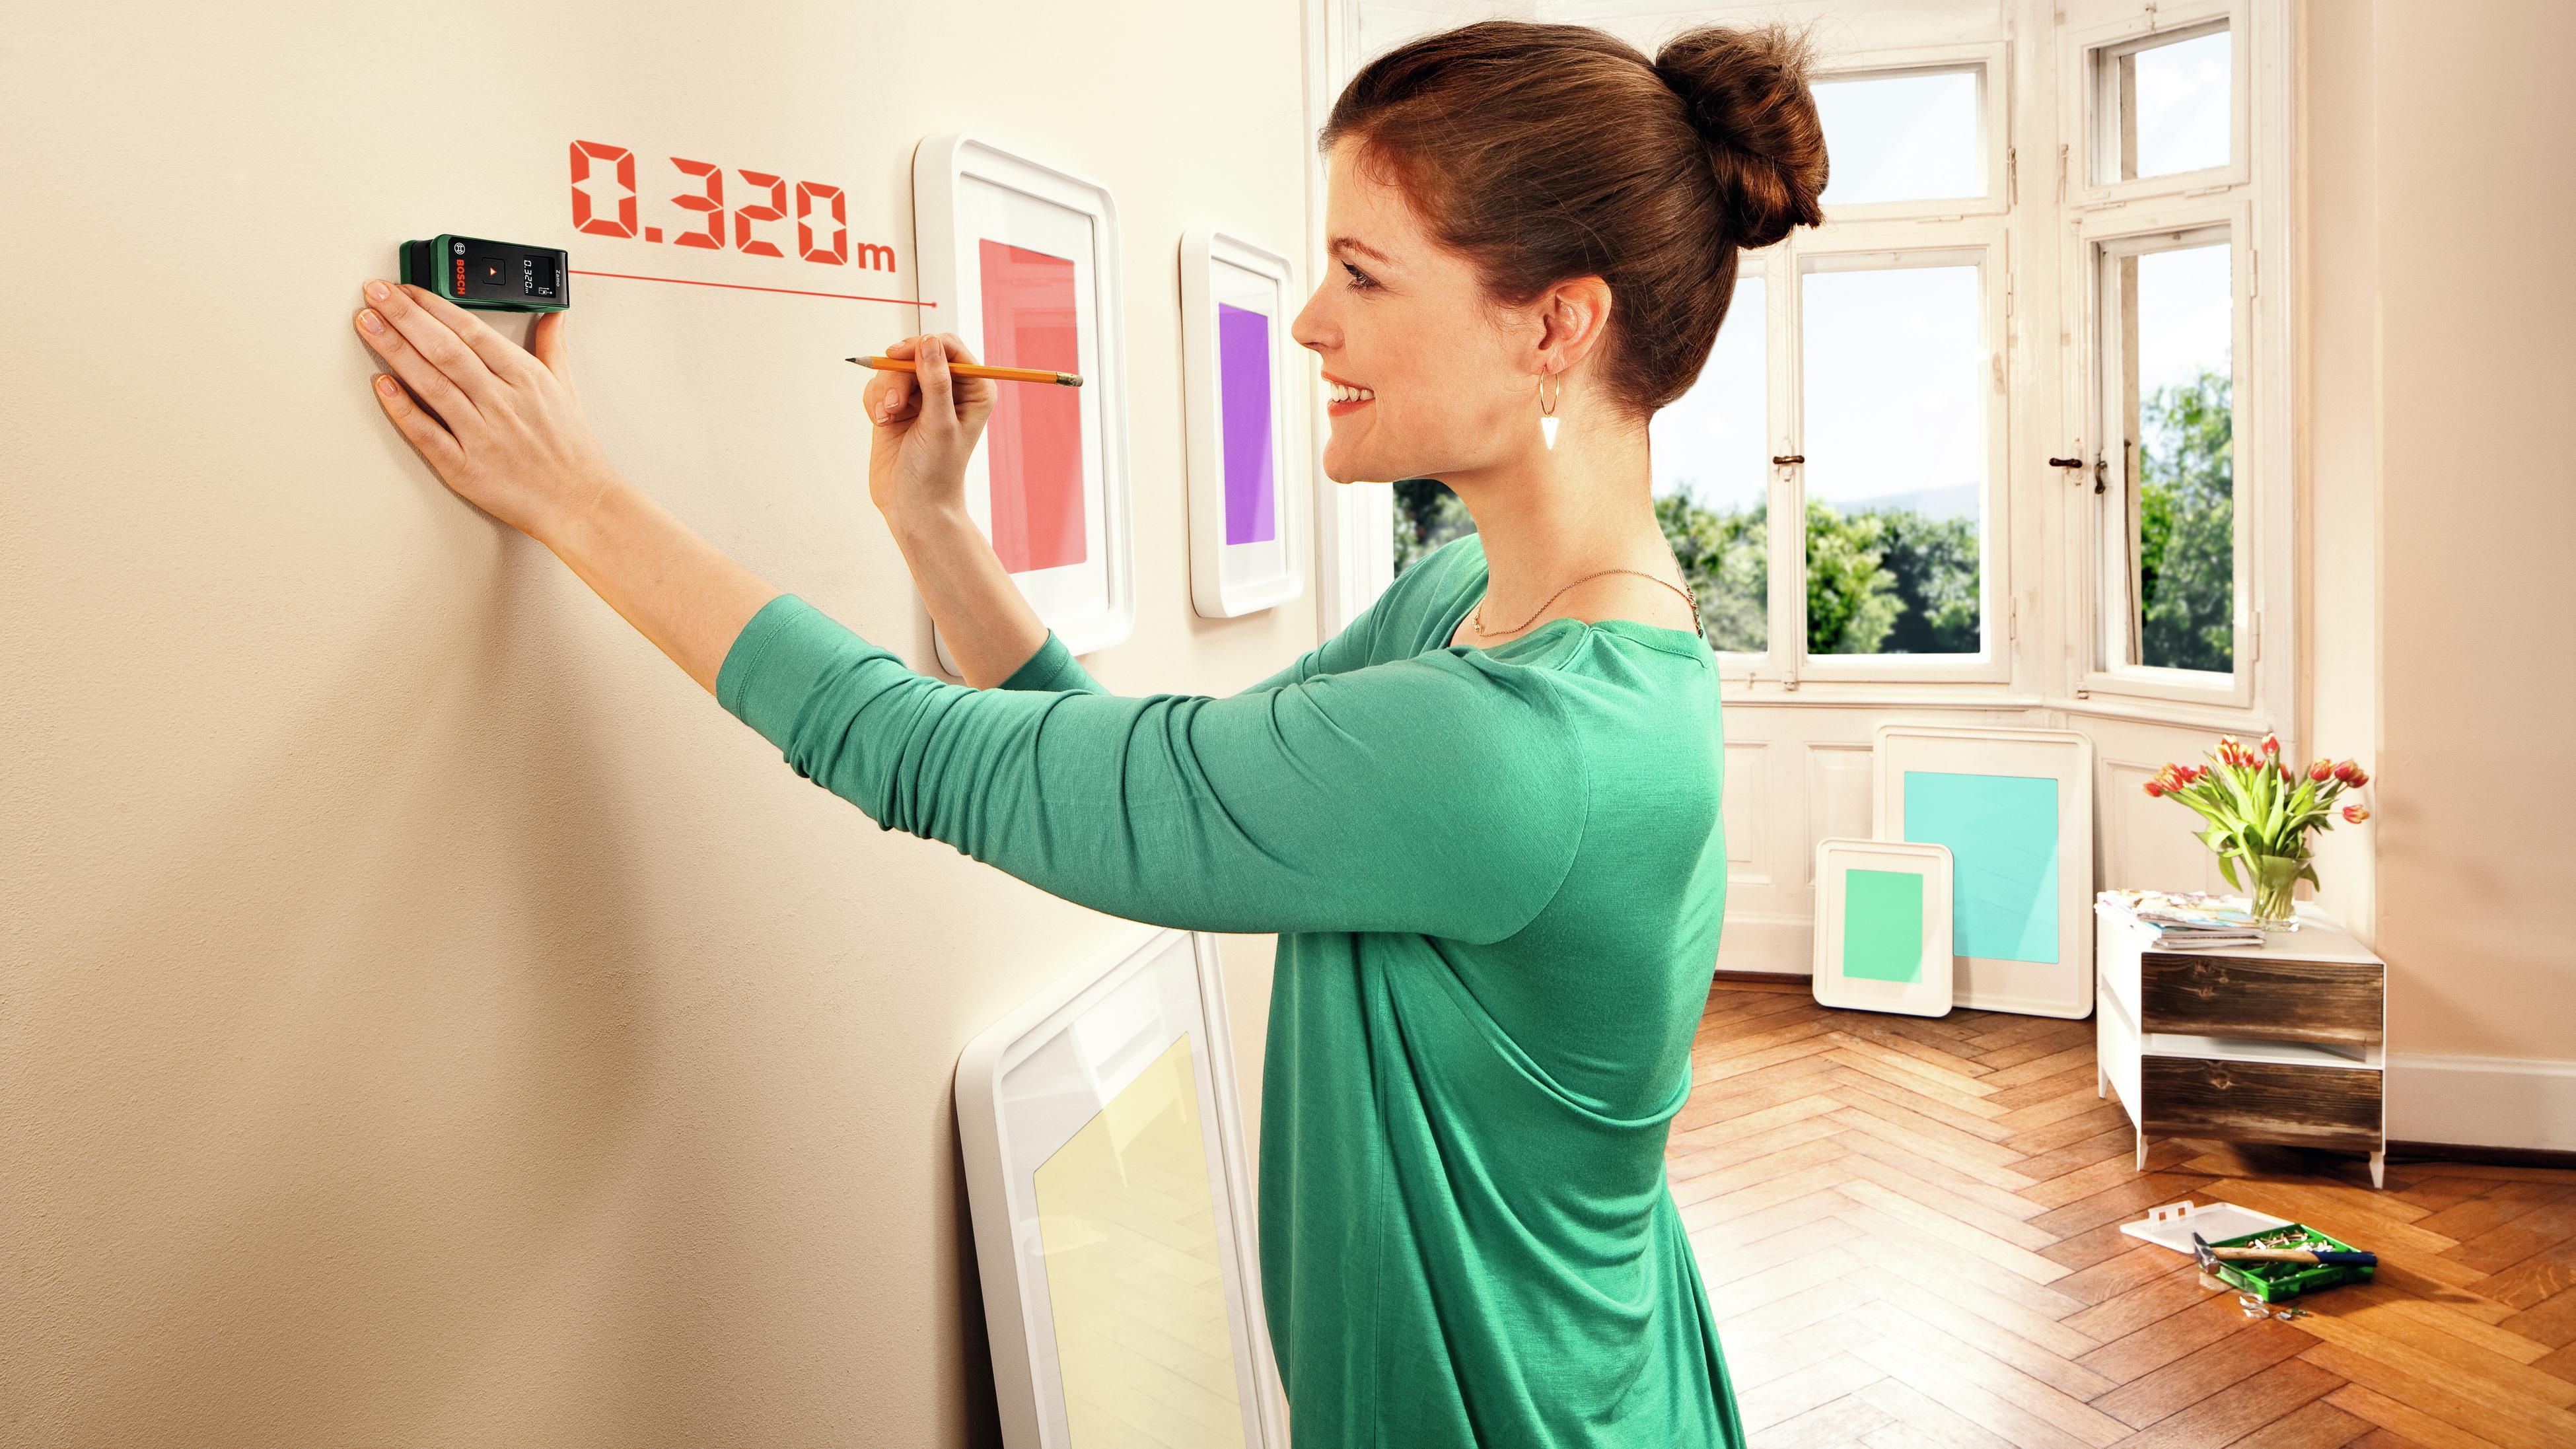 Person using digital measuring tool on wall.